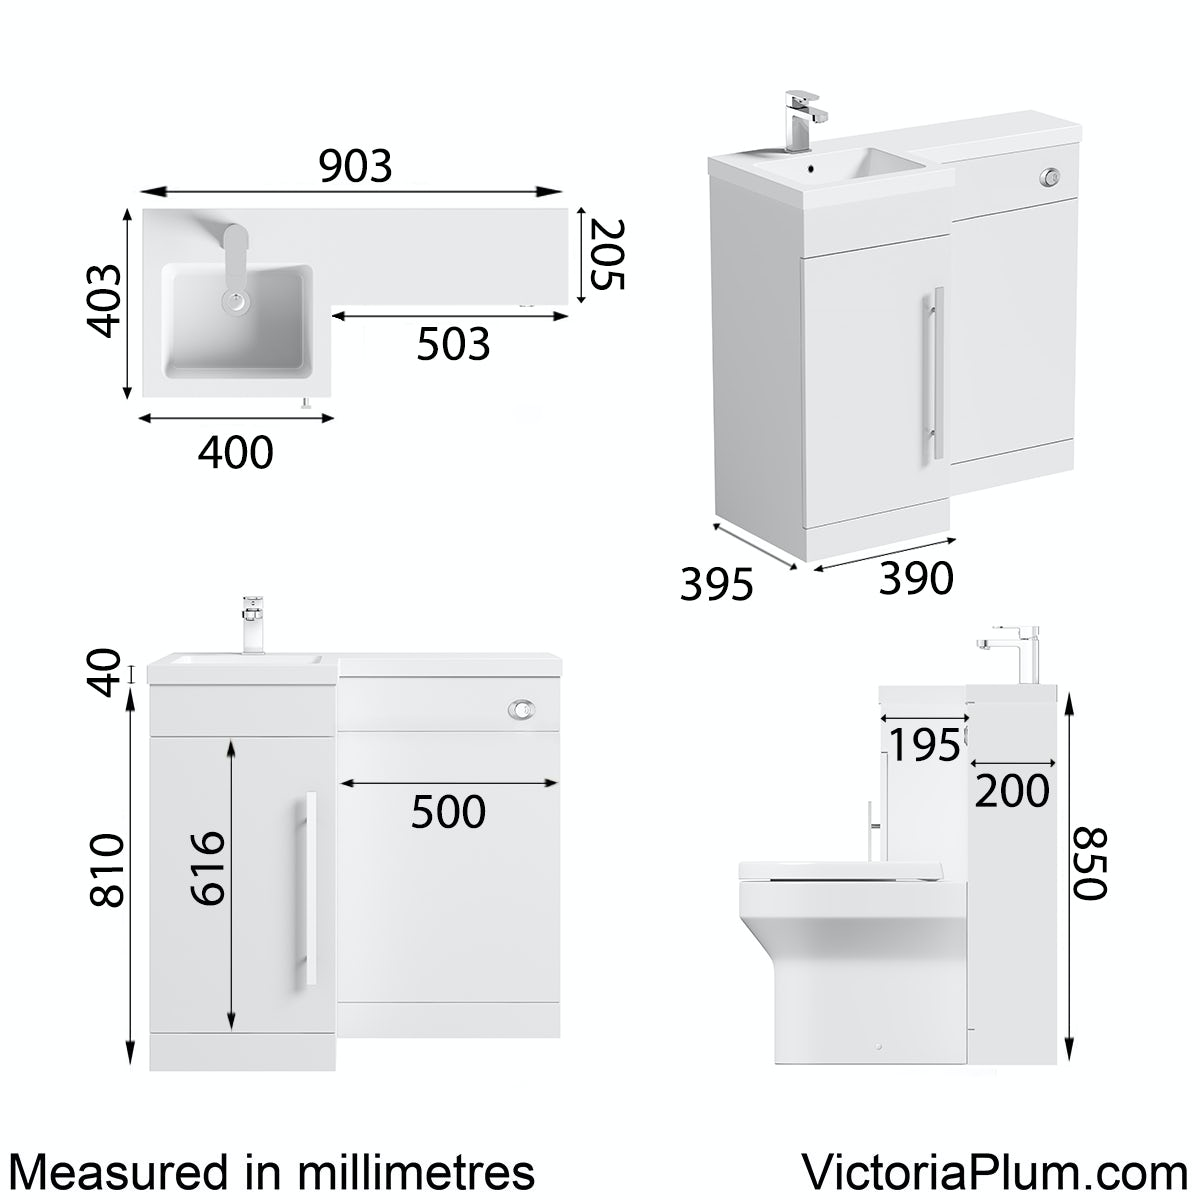 Dimensions for Orchard MySpace white left handed unit including concealed cistern